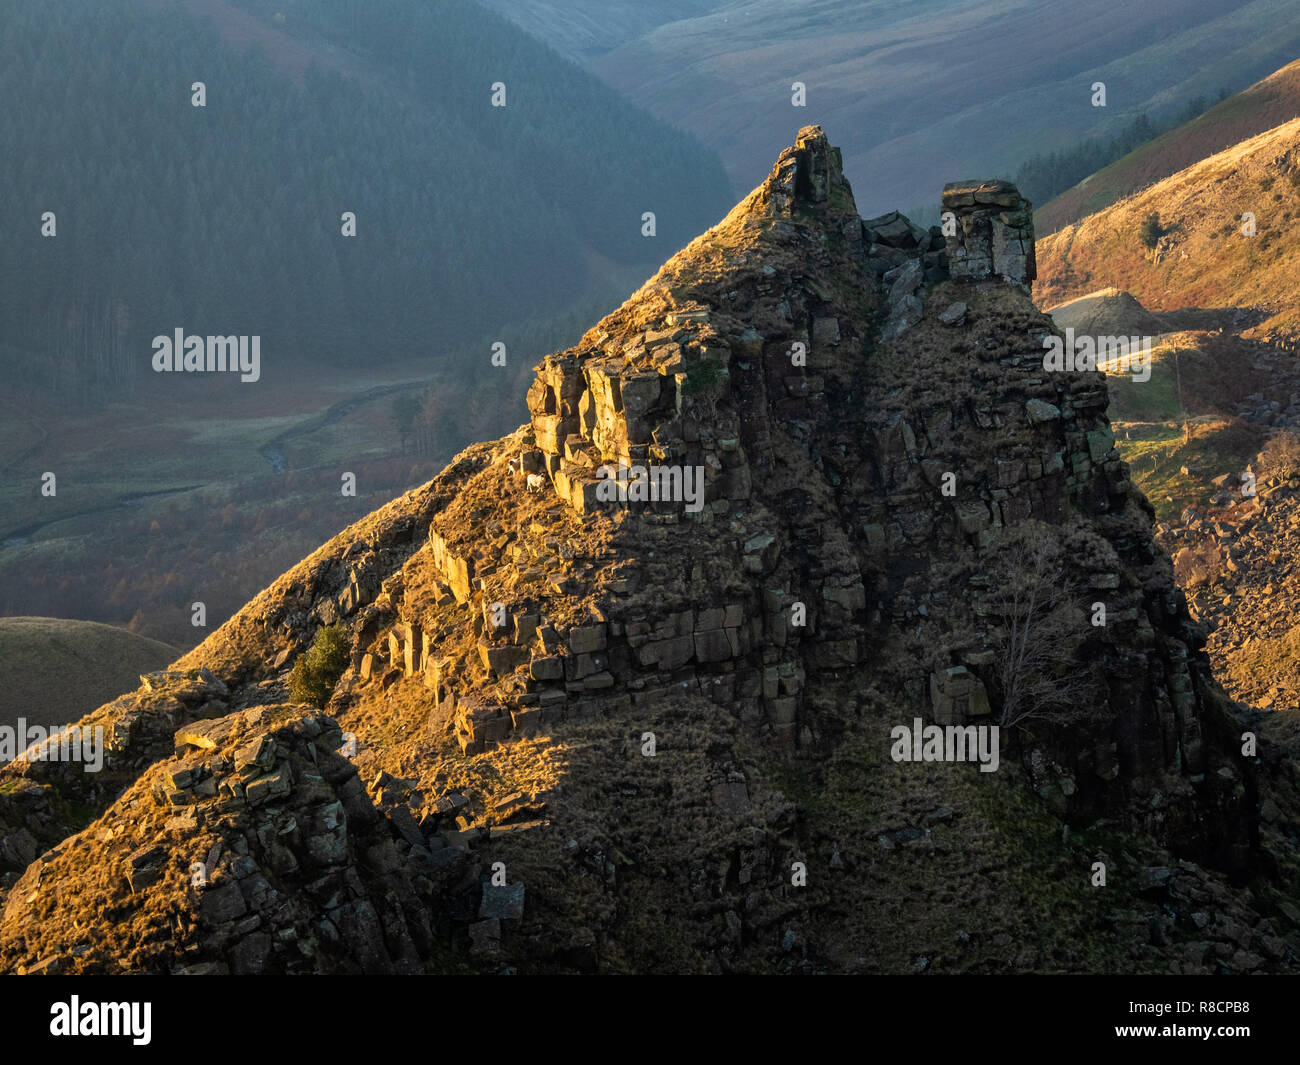 The Tower at Alport Castles above Alport Dale in the Derbyshire High Peak UK where millstone grit strata have slipped over shale beds - Stock Image